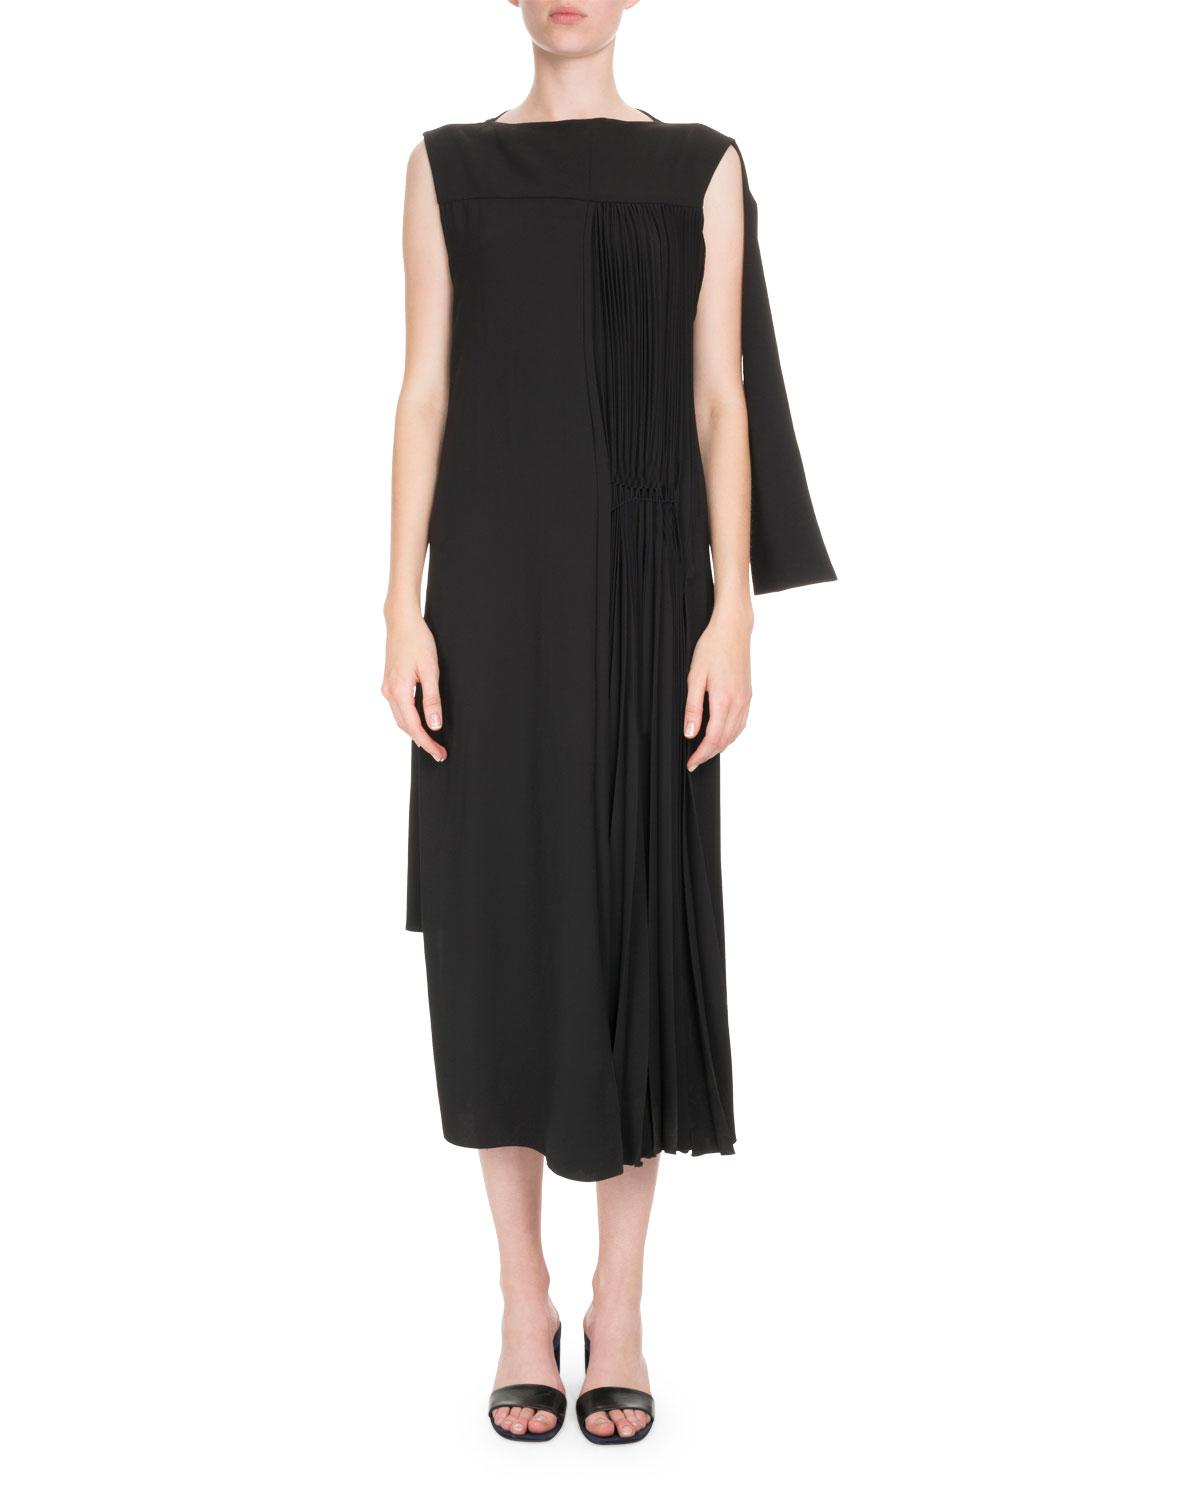 Clearance Outlet Store 2018 Discount Black asymmetric dress Loewe Choice Cheap Online GWiLMxFd